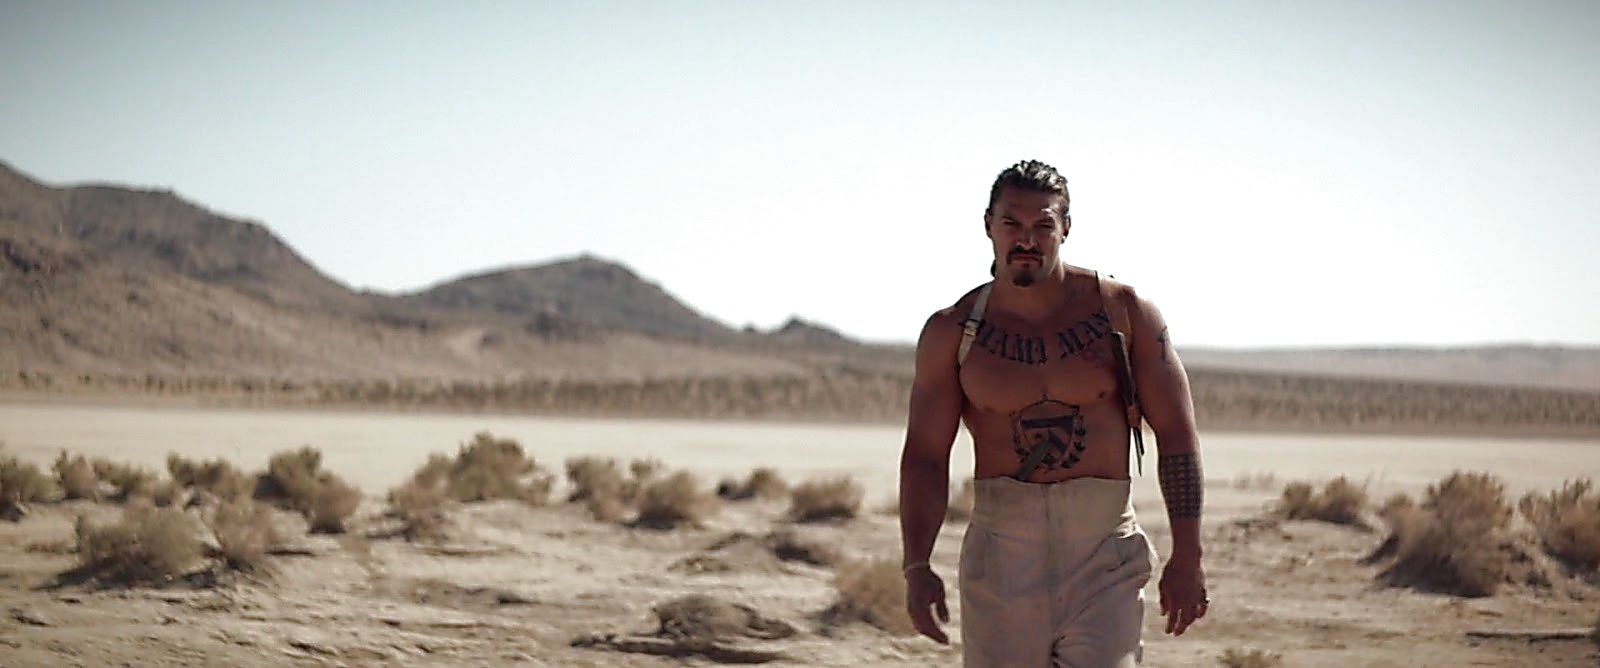 Jason Momoa The Bad Batch 2017 06 23 13jpg